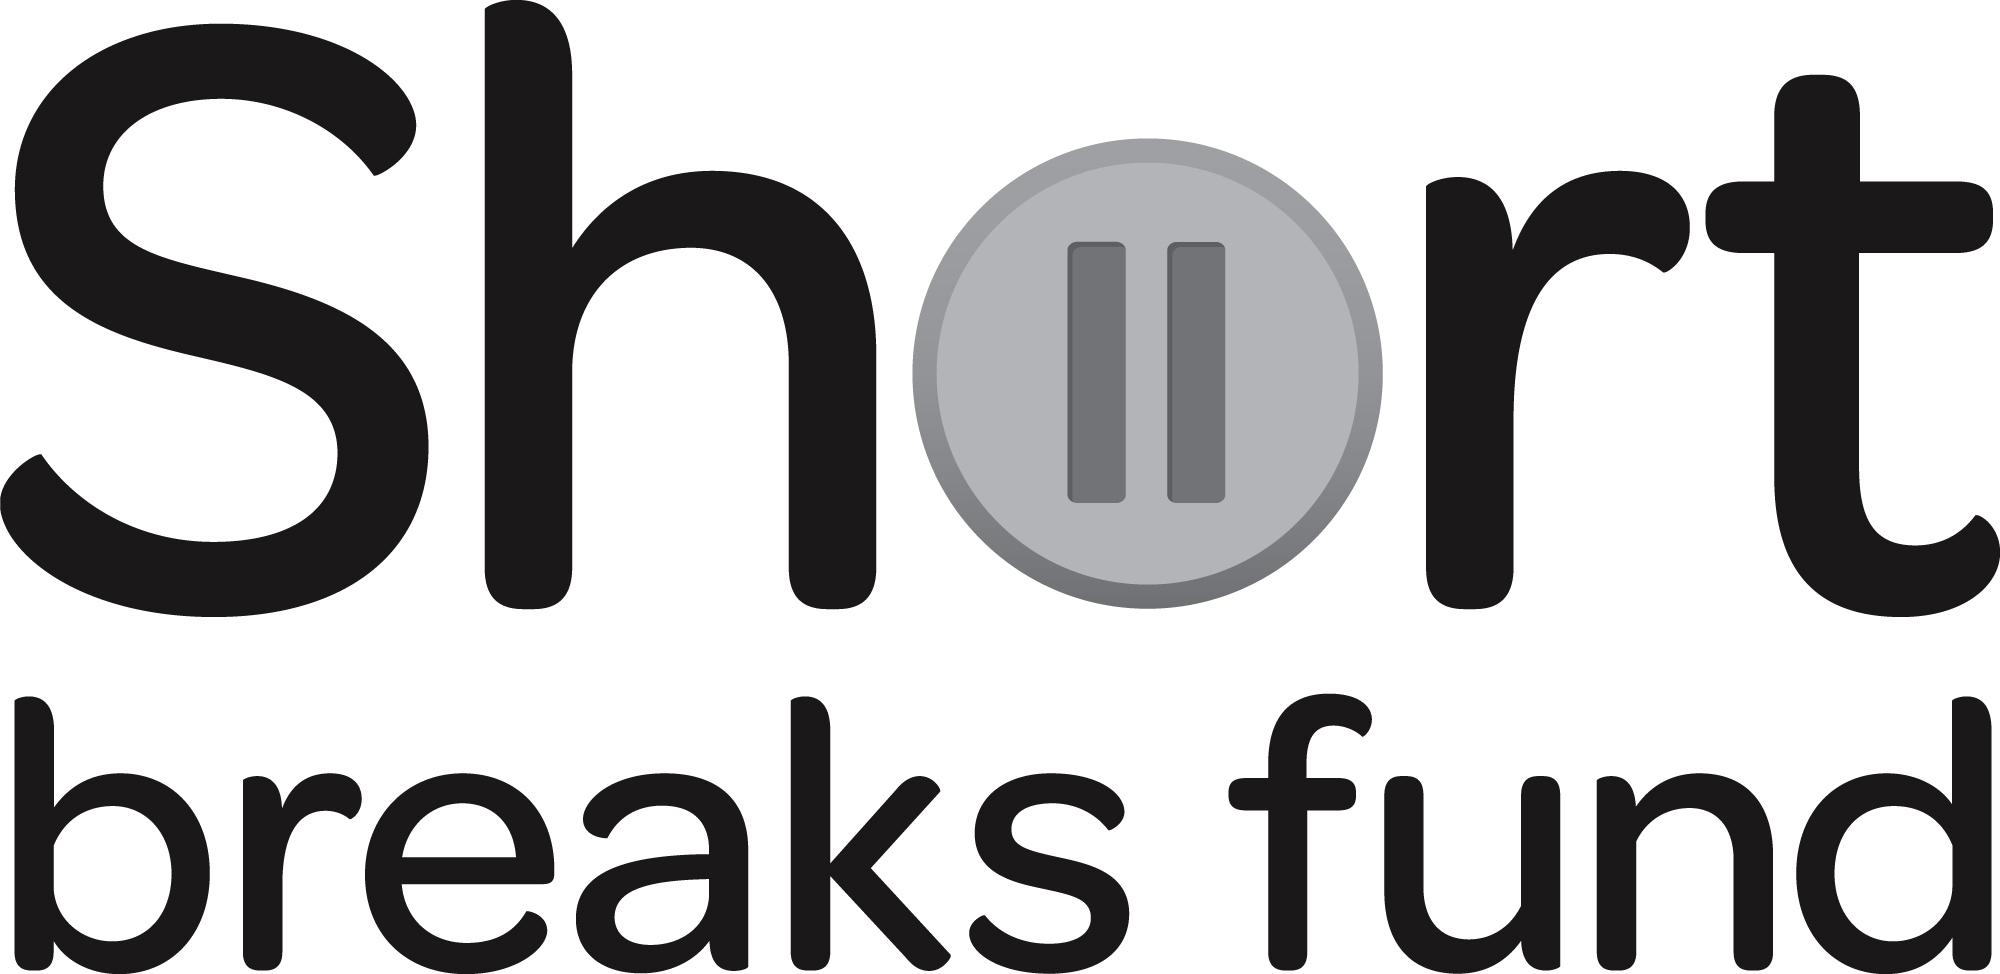 Black Short Breaks Fund logo